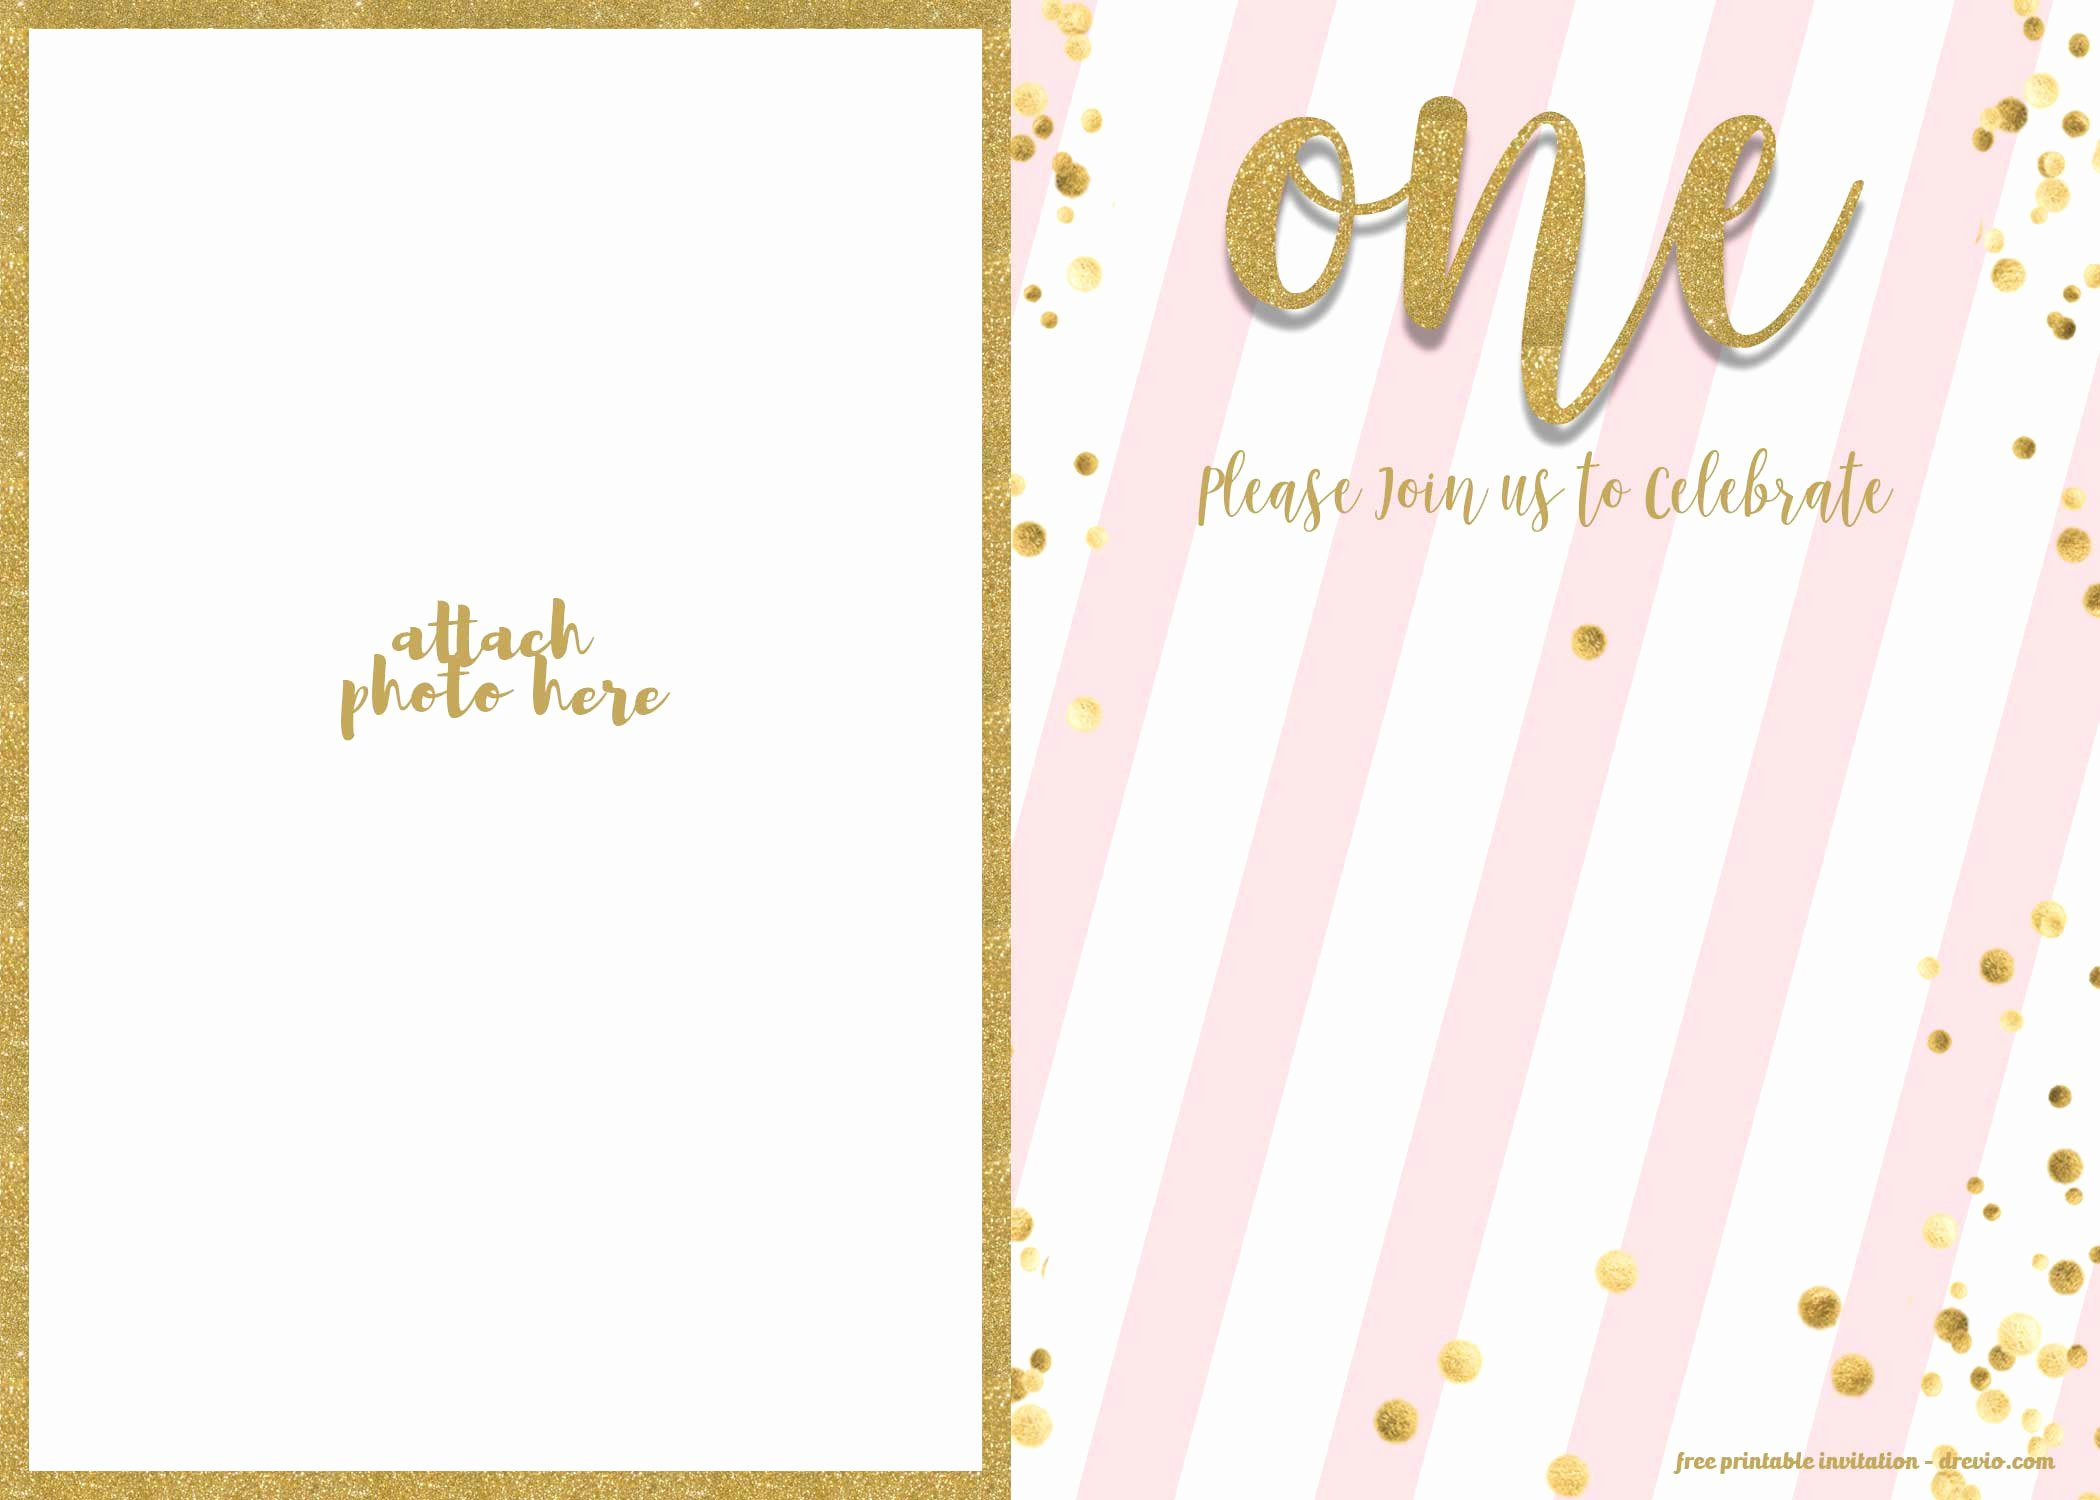 free 1st birthday invitation pink and gold glitter template